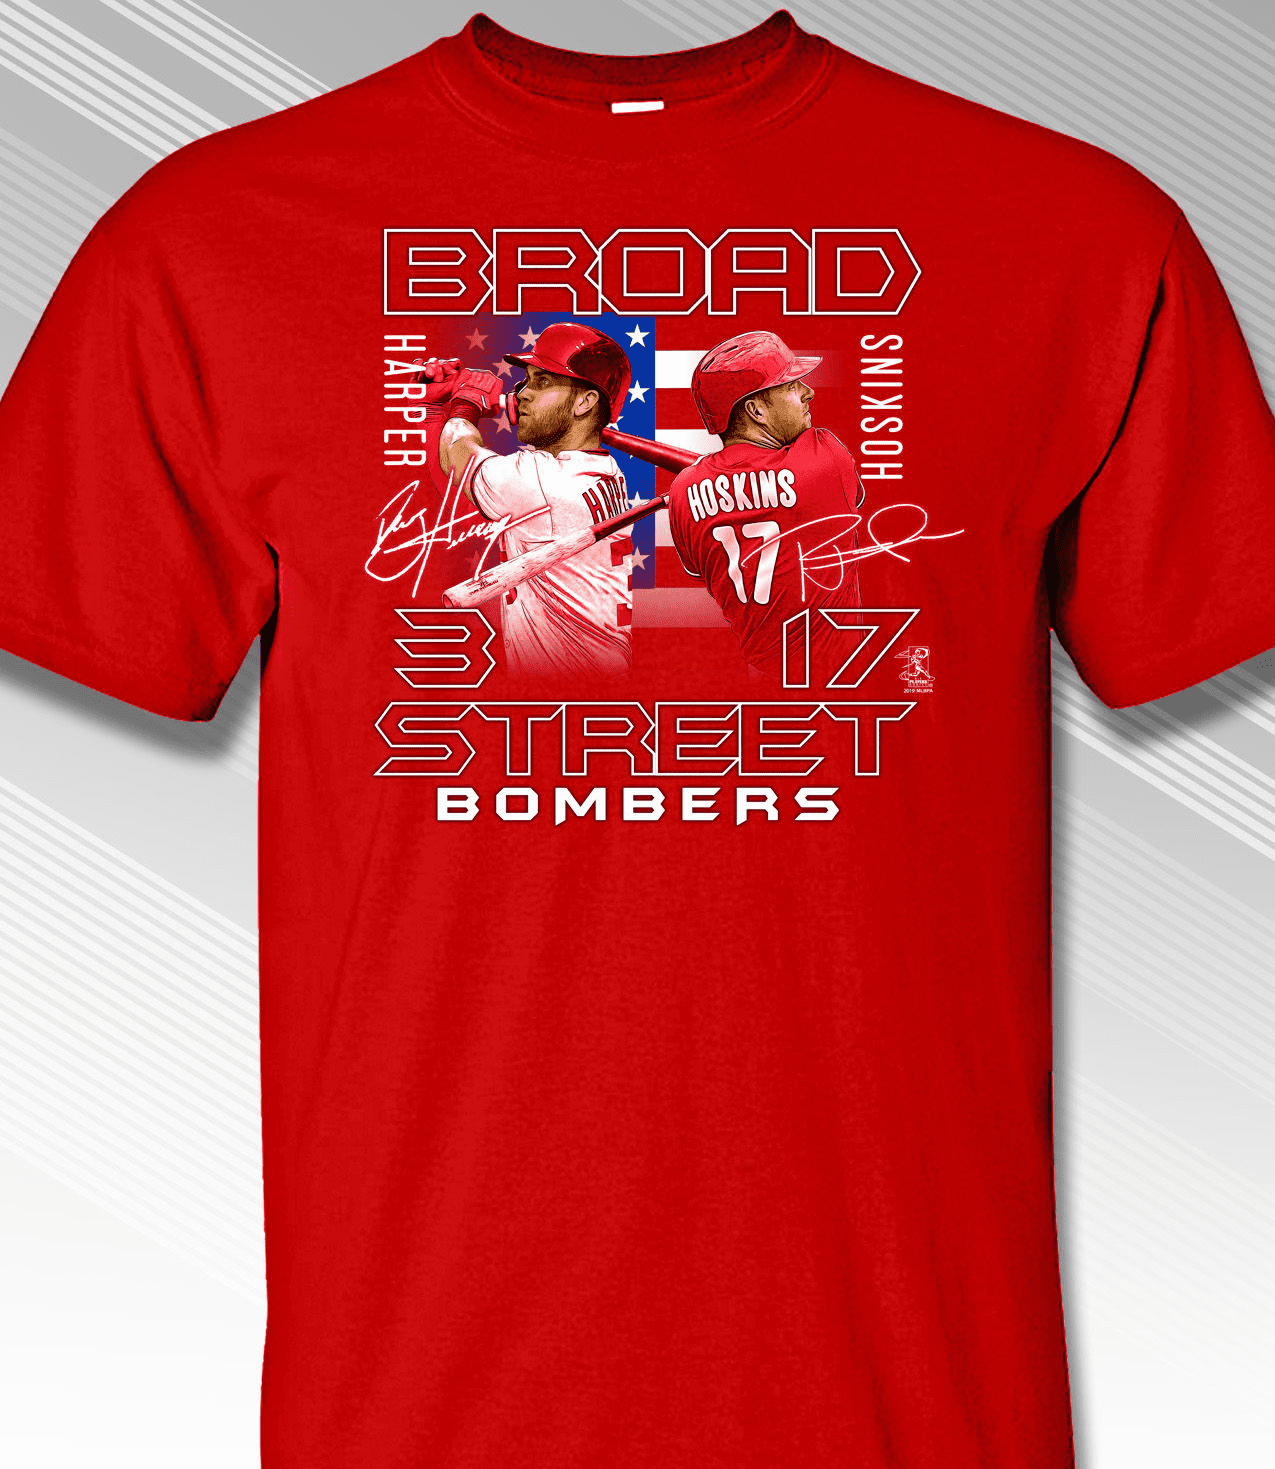 Bryce Harper and Rhys Hoskins Broad Street Bombers T-Shirt<br>Short or Long Sleeve<br>Youth Med to Adult 4X